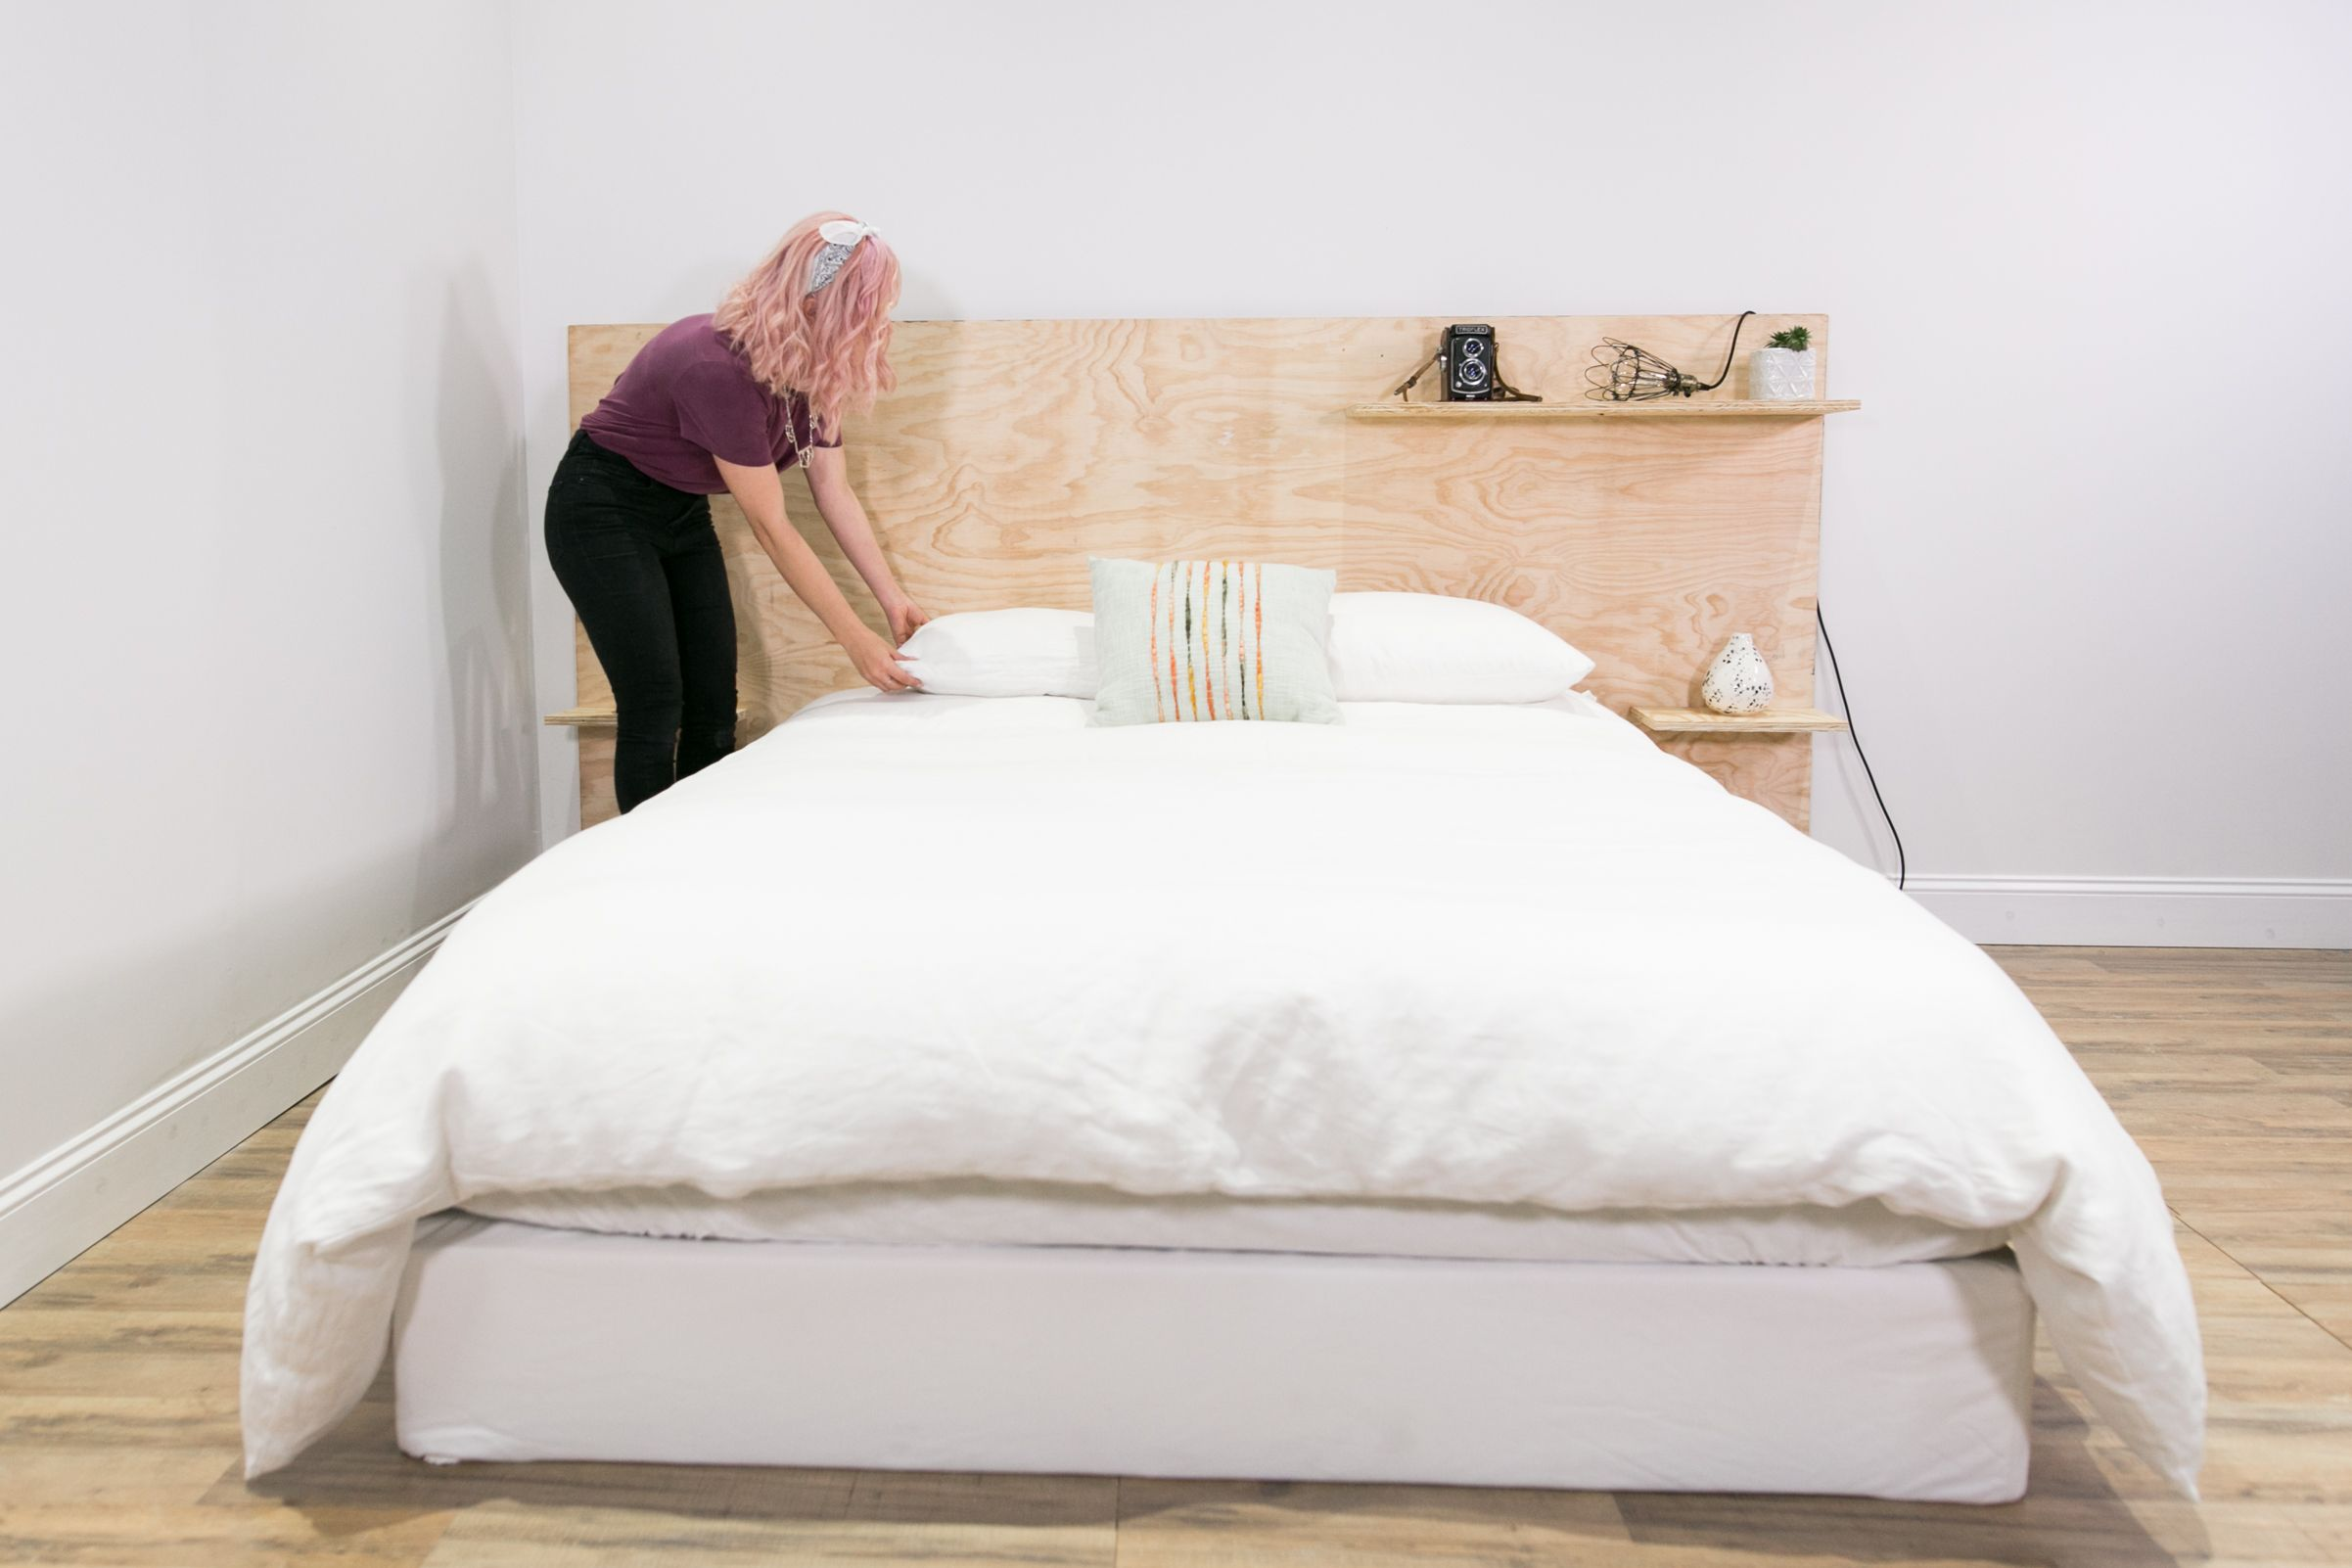 Diy Minimalist Plywood Shelf Headboard Headboard With Shelves Bed Headboard Design Plywood Bed Designs